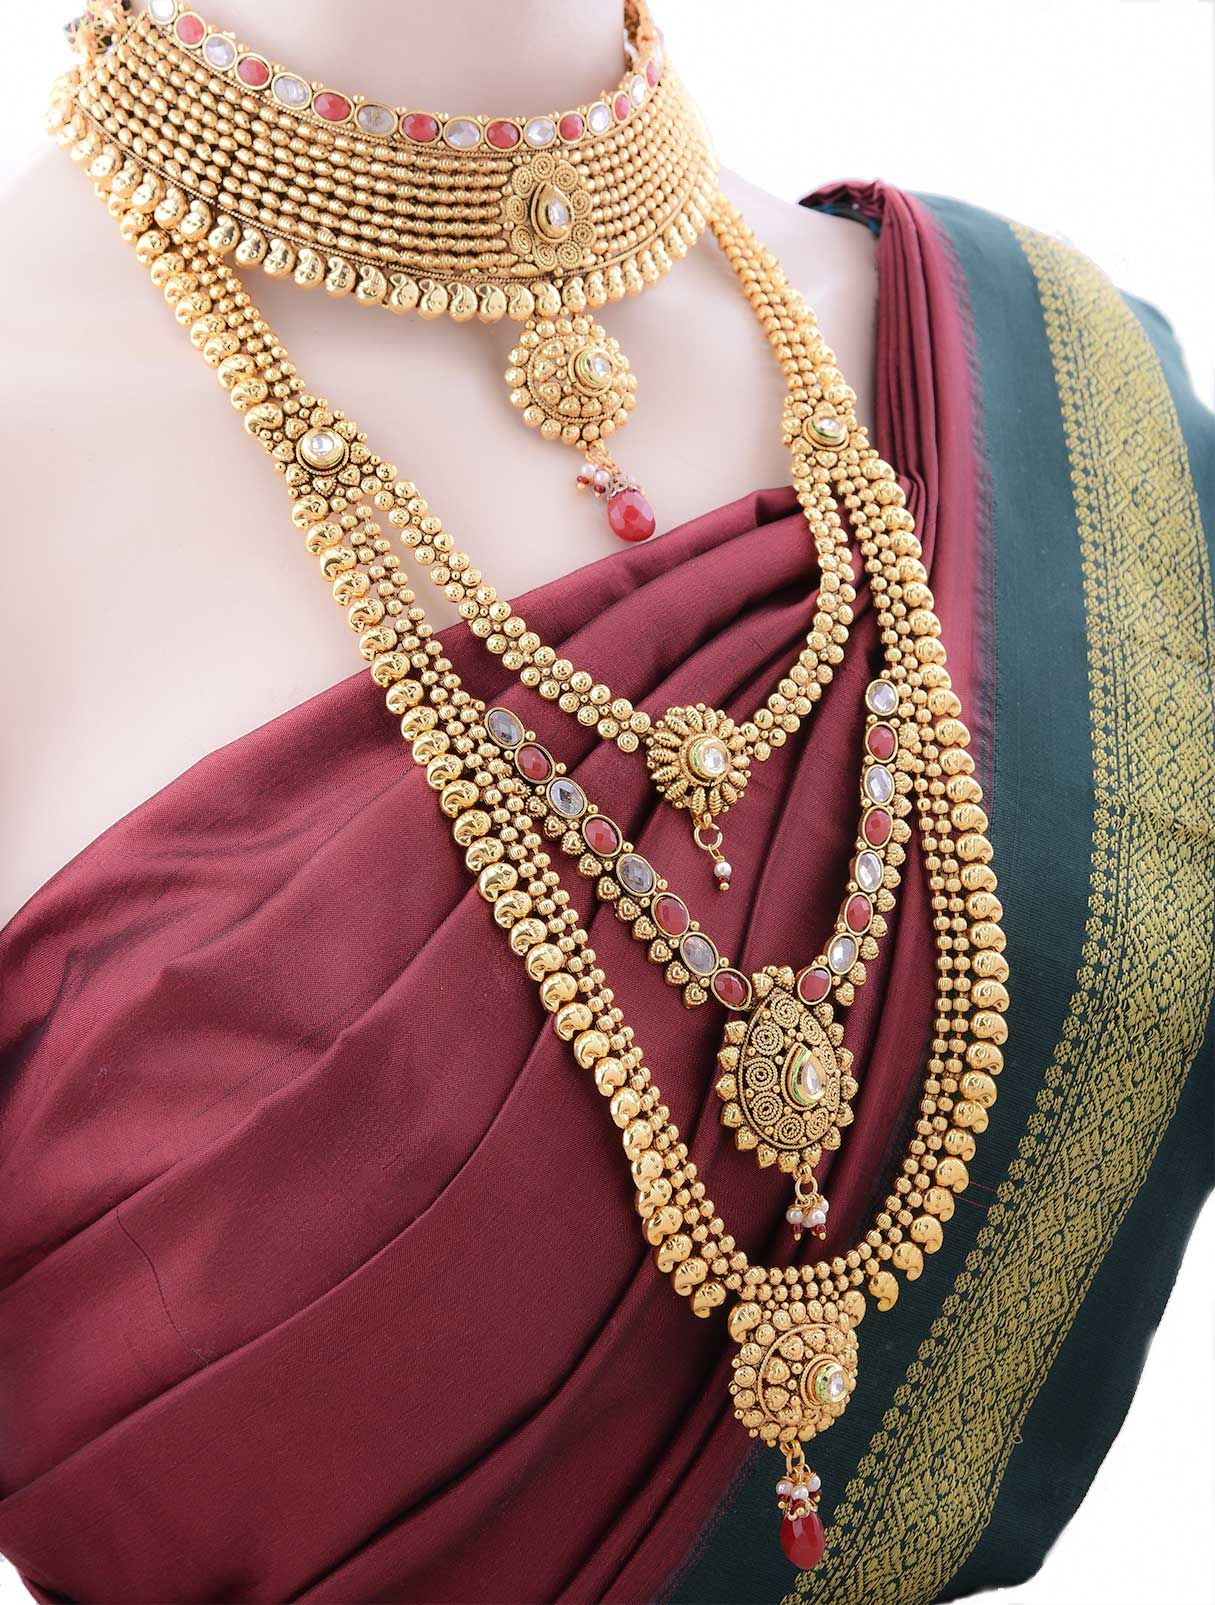 Jared Jewelers Near Me Bridal Jewellery On Rent At Coimbatore Opposite Jewelry Repair Near Gold Bridal Necklace Crystal Earrings Wedding Gold Bridal Earrings